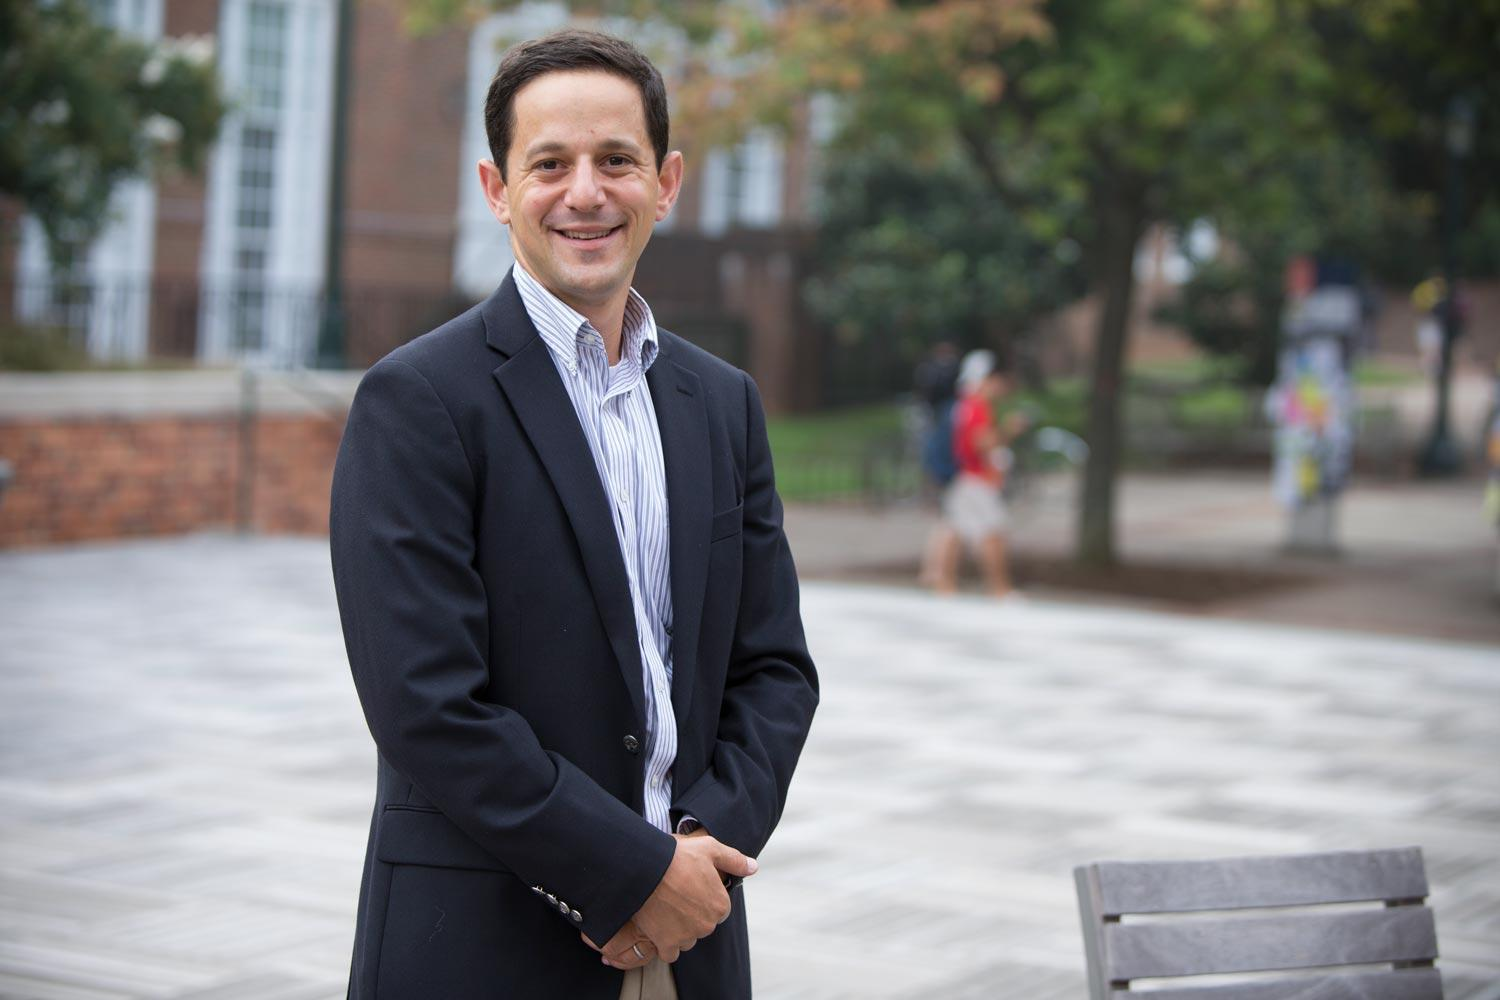 Ben Castleman gained attention with a text-message-based approach to encouraging first-generation students to enroll in college. He's now seeking to help them finish degrees.